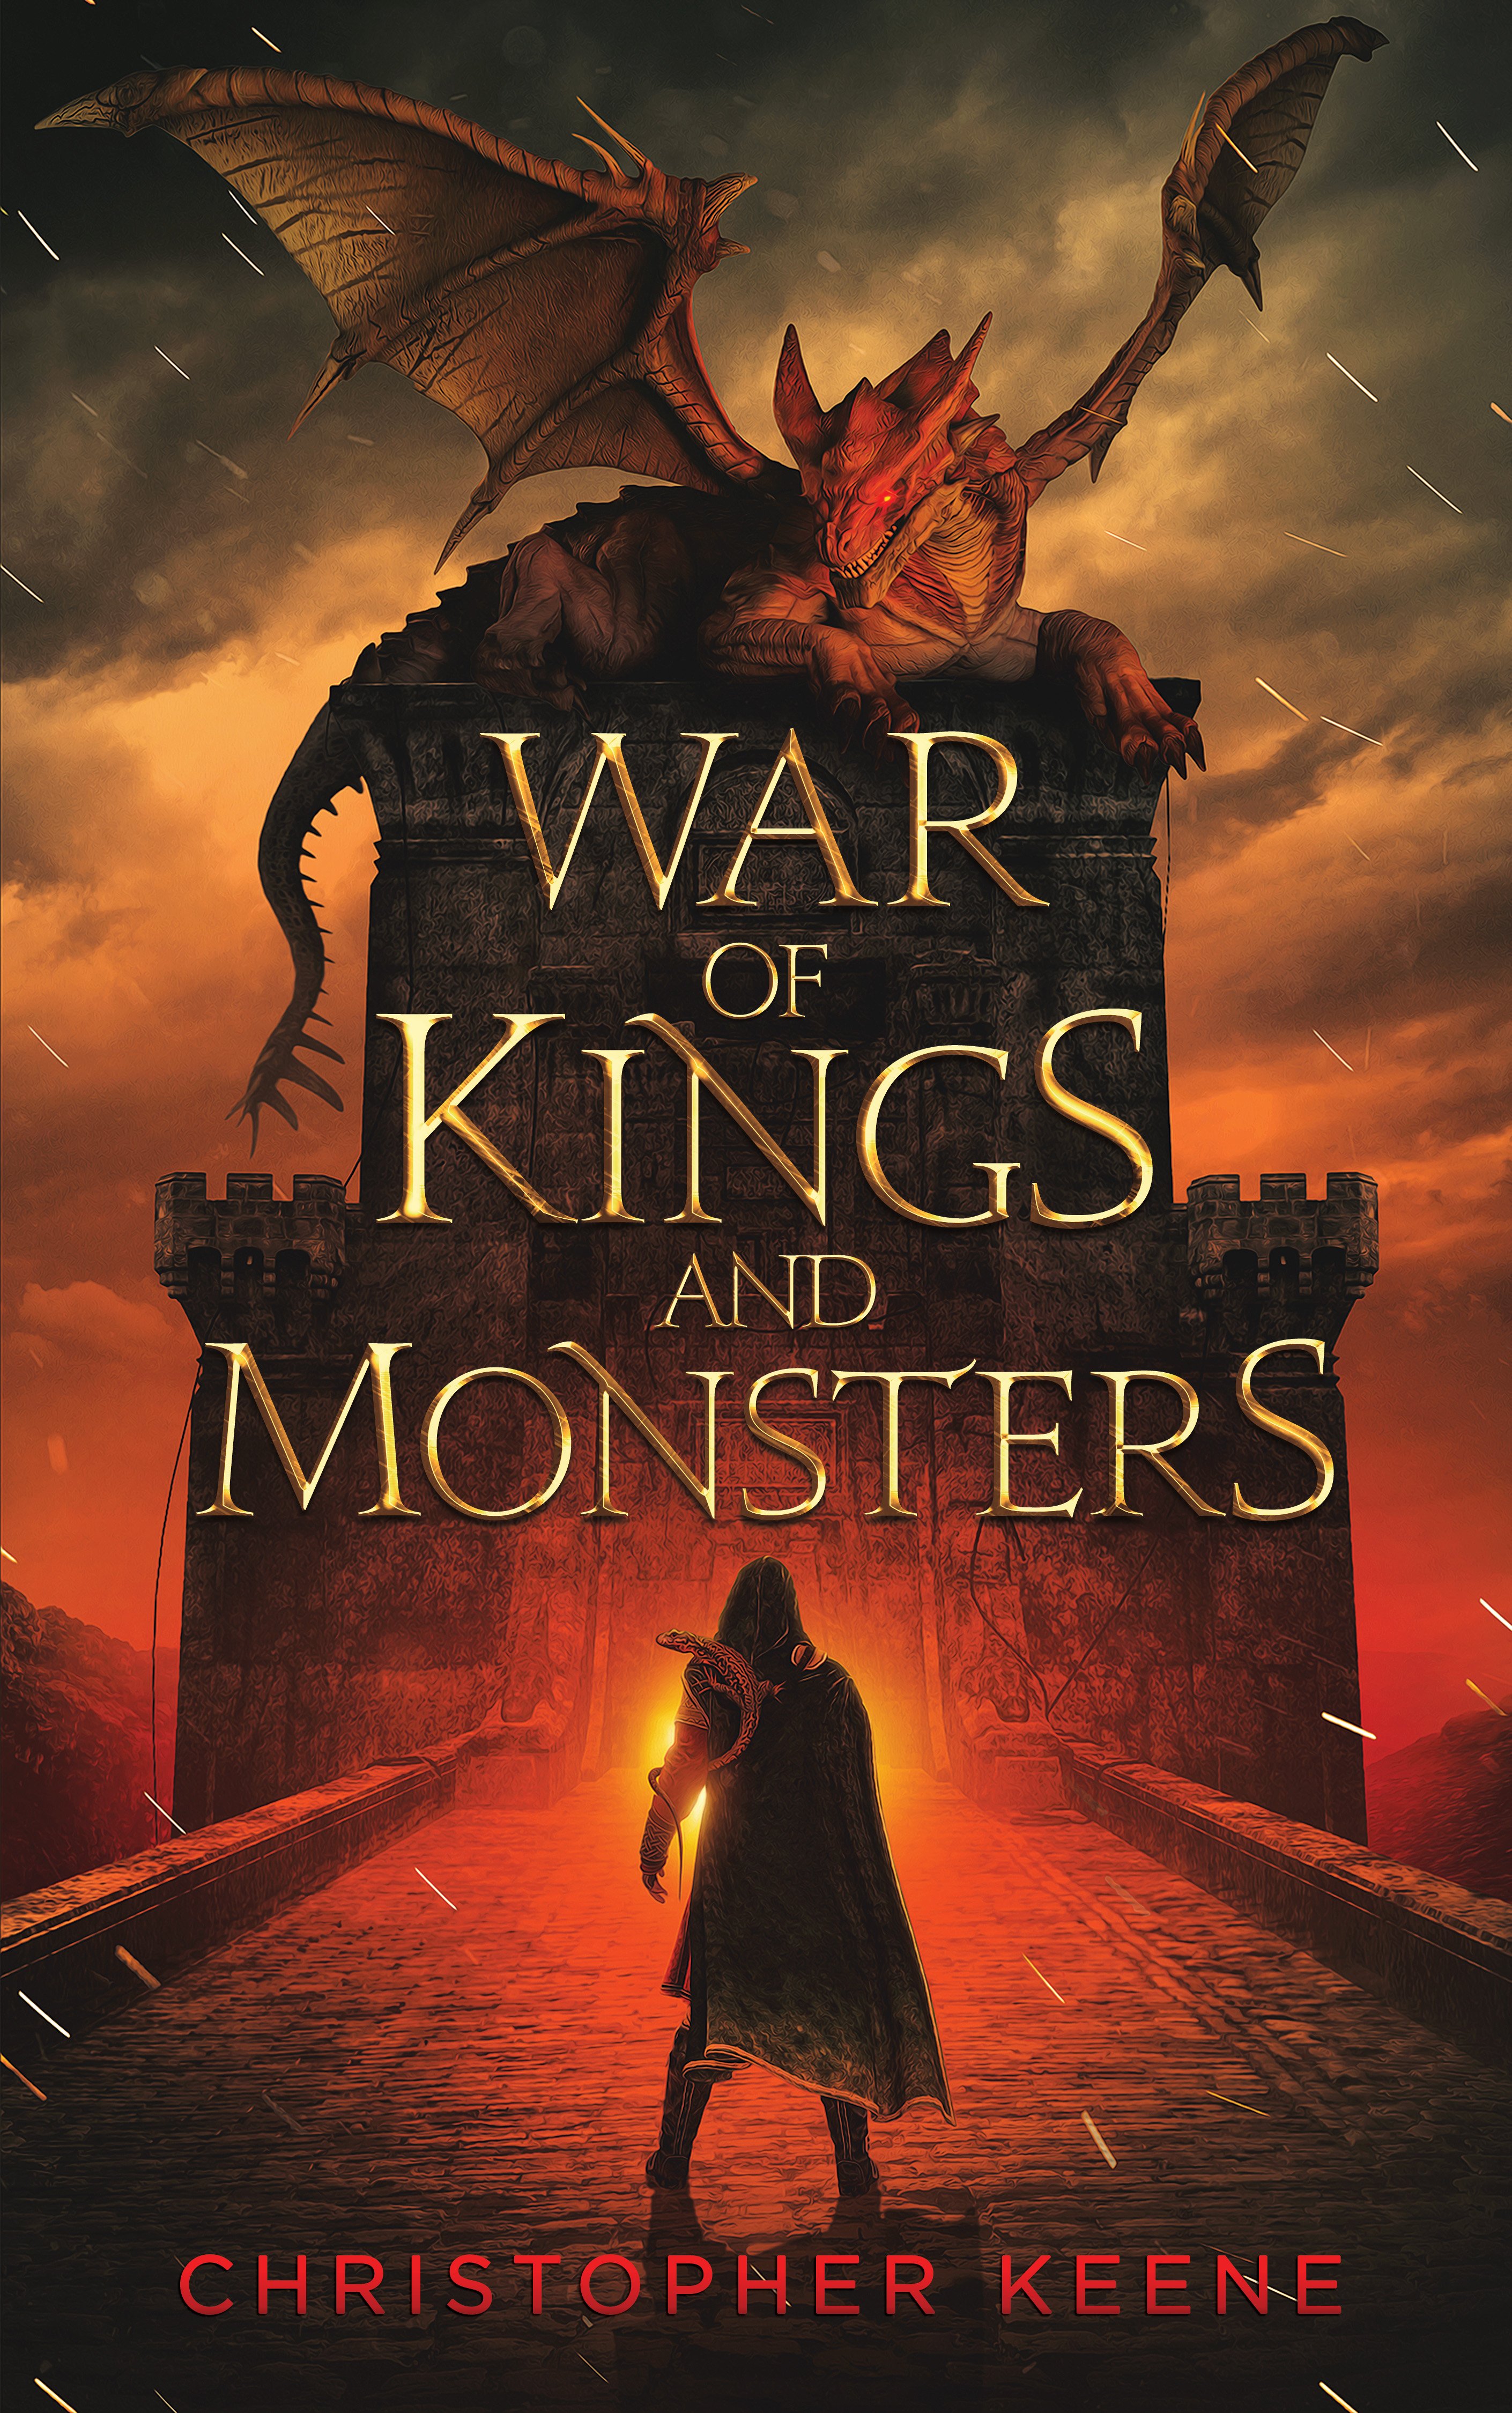 War of Kings and Monsters by Christopher Keene